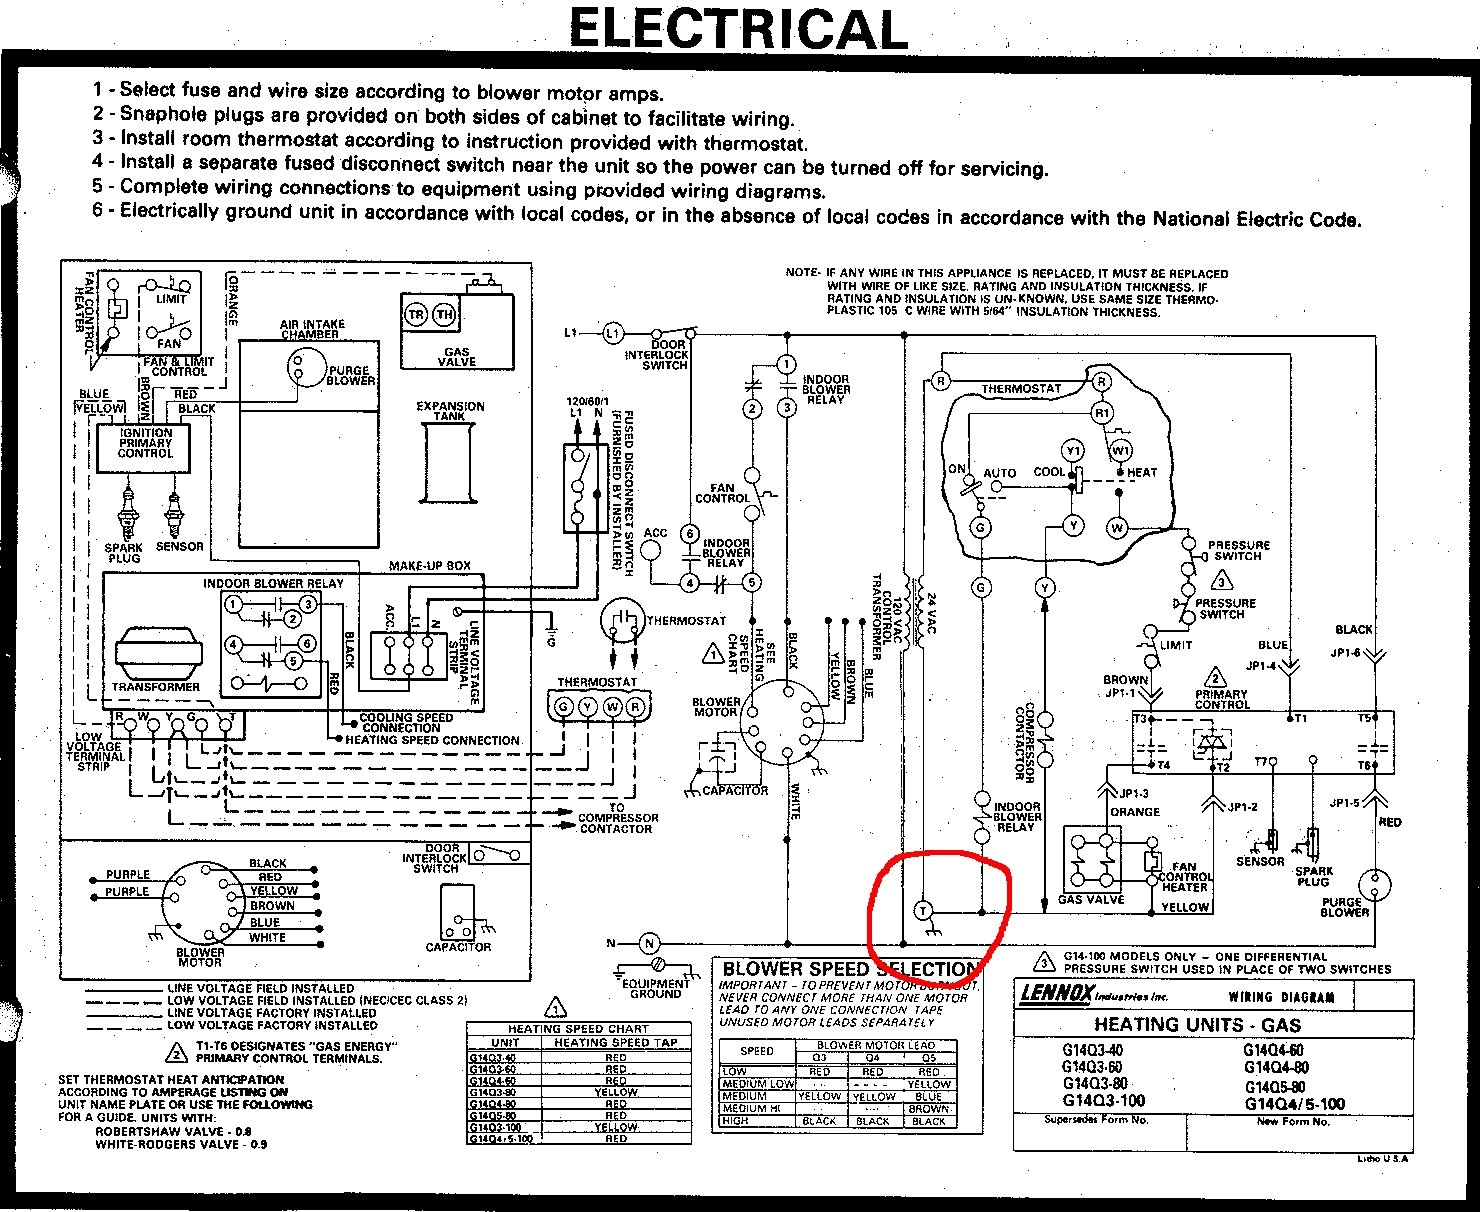 Gas Furnace Thermostat Wiring Diagram Wires on roll out switch, coleman evcon, typical central ac, for lennox, blower motor, 2 wire thermostat, gms80453anbd, mobile home intertherm, 120 for old, air temp,